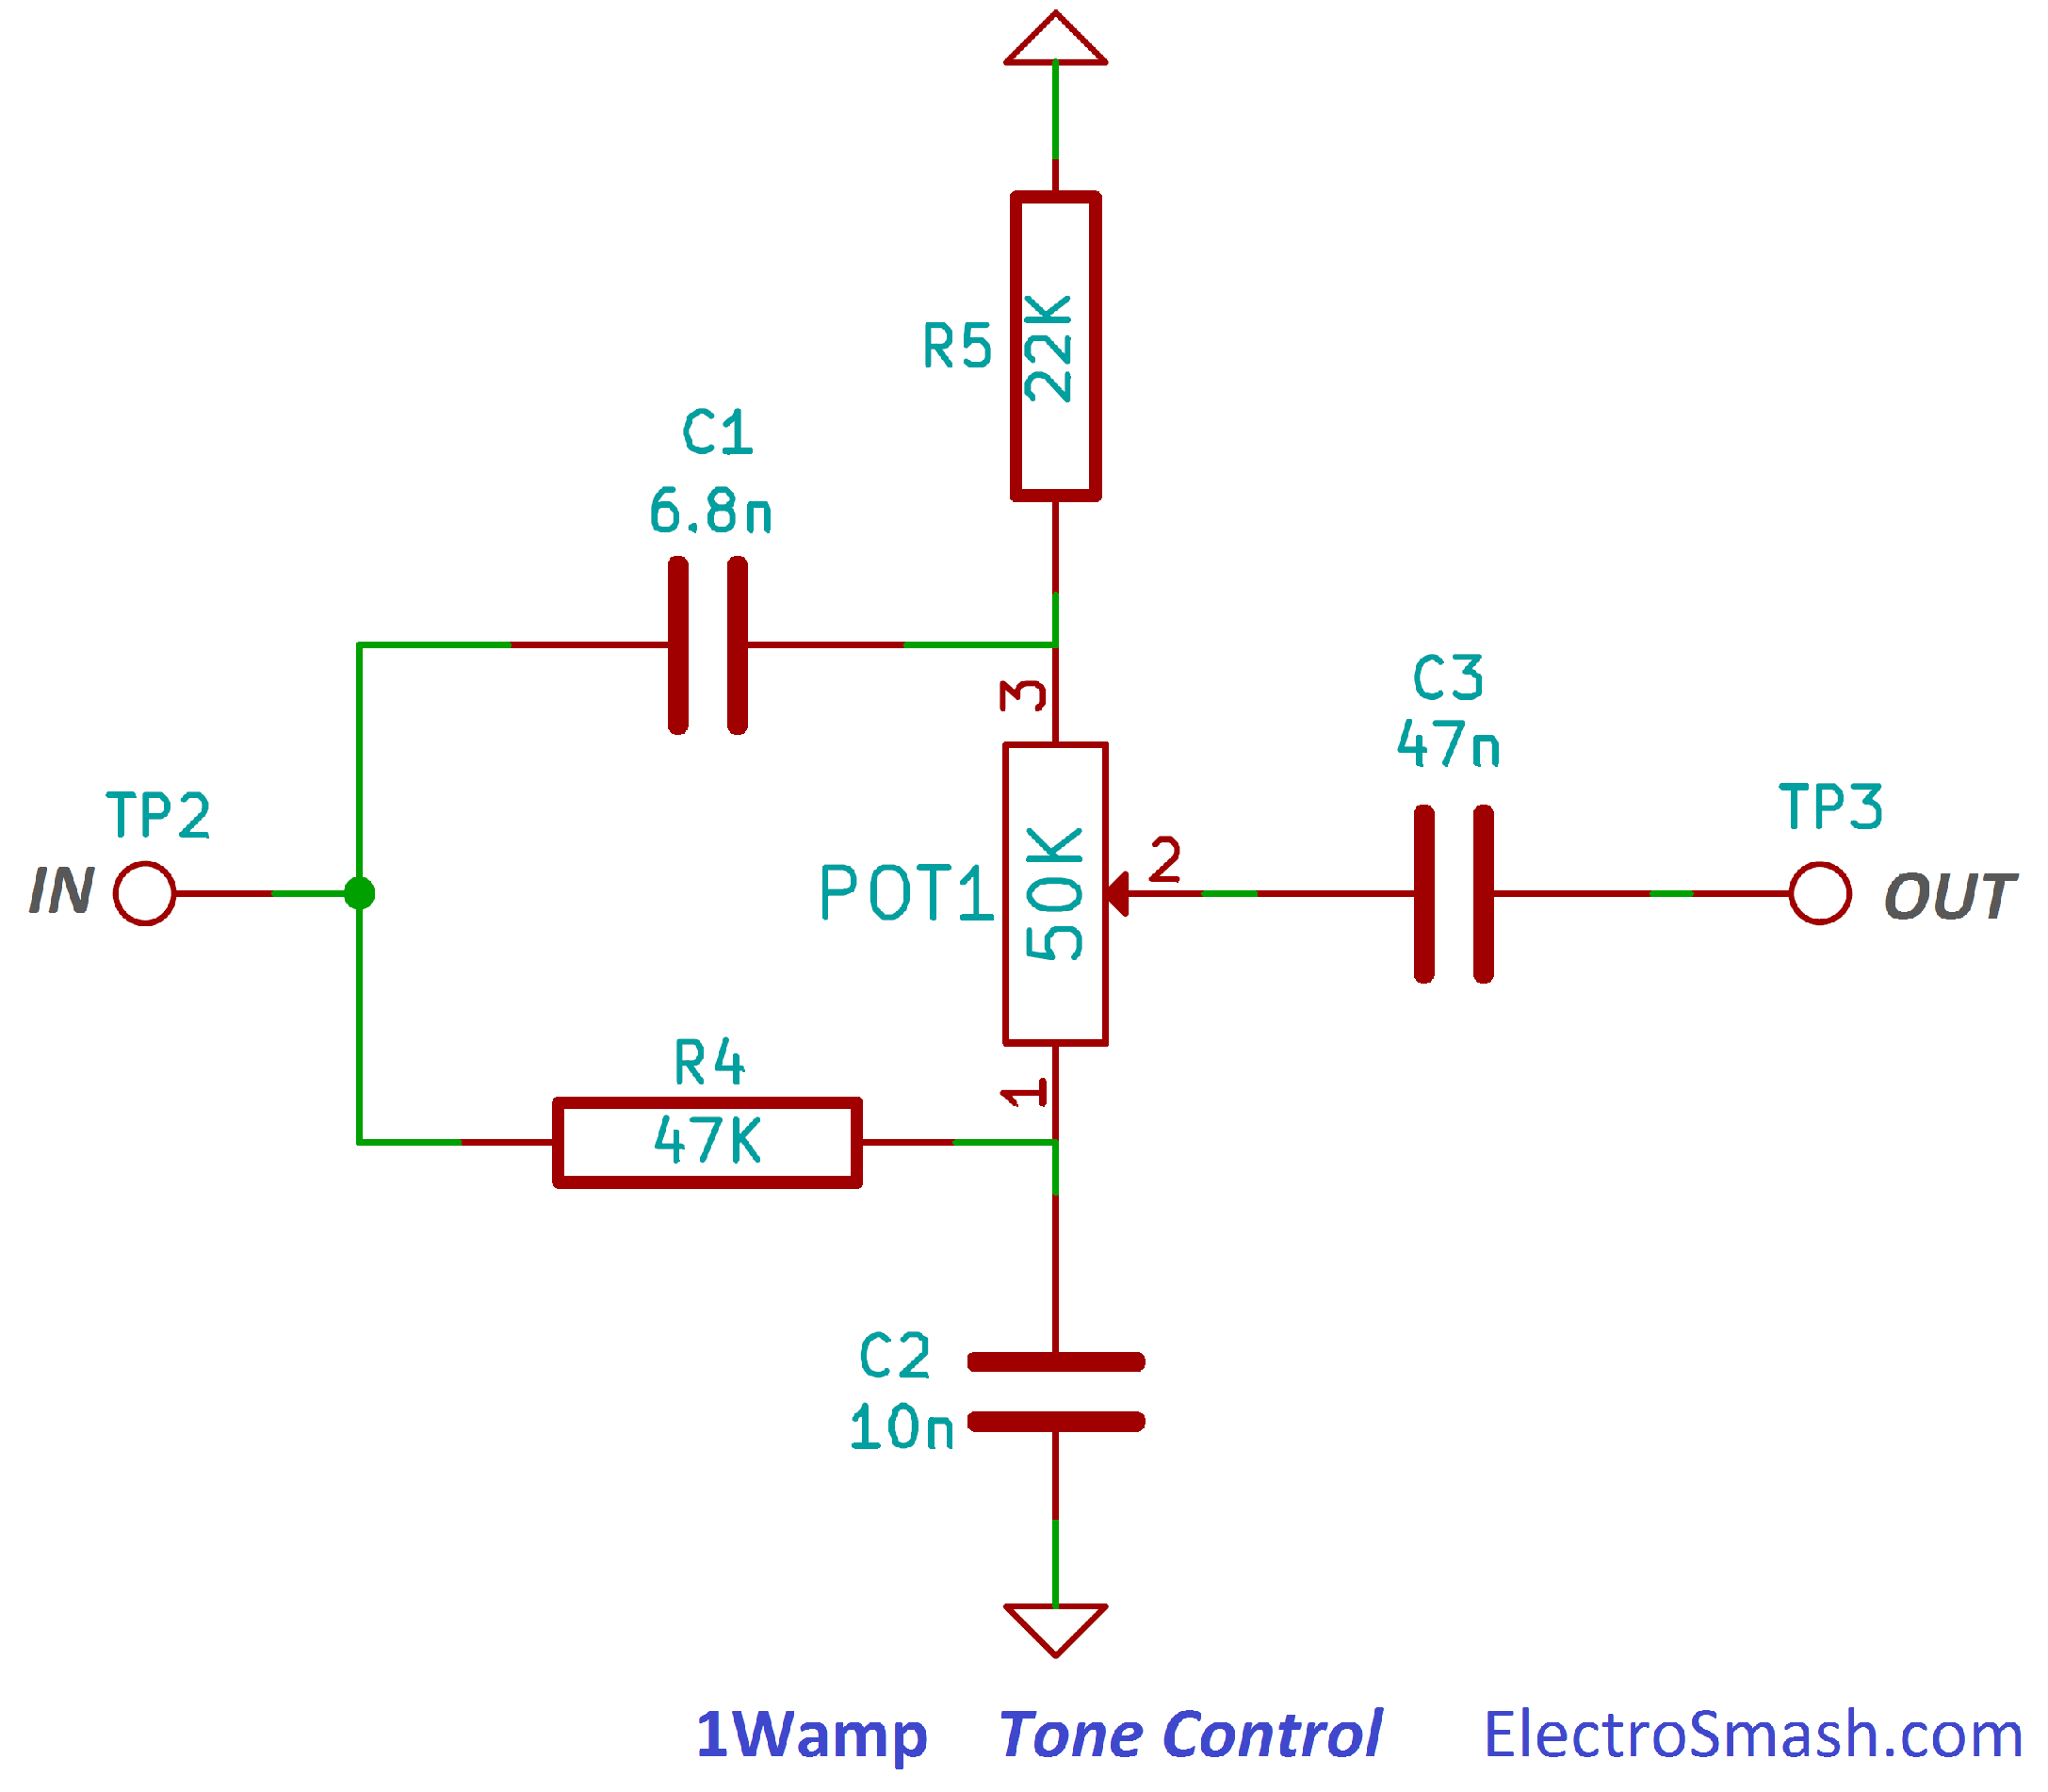 Electrosmash 1wamp Electroc Guitar Amplifier At Amp T Phone Wiring Diagram Tone Control Circuit